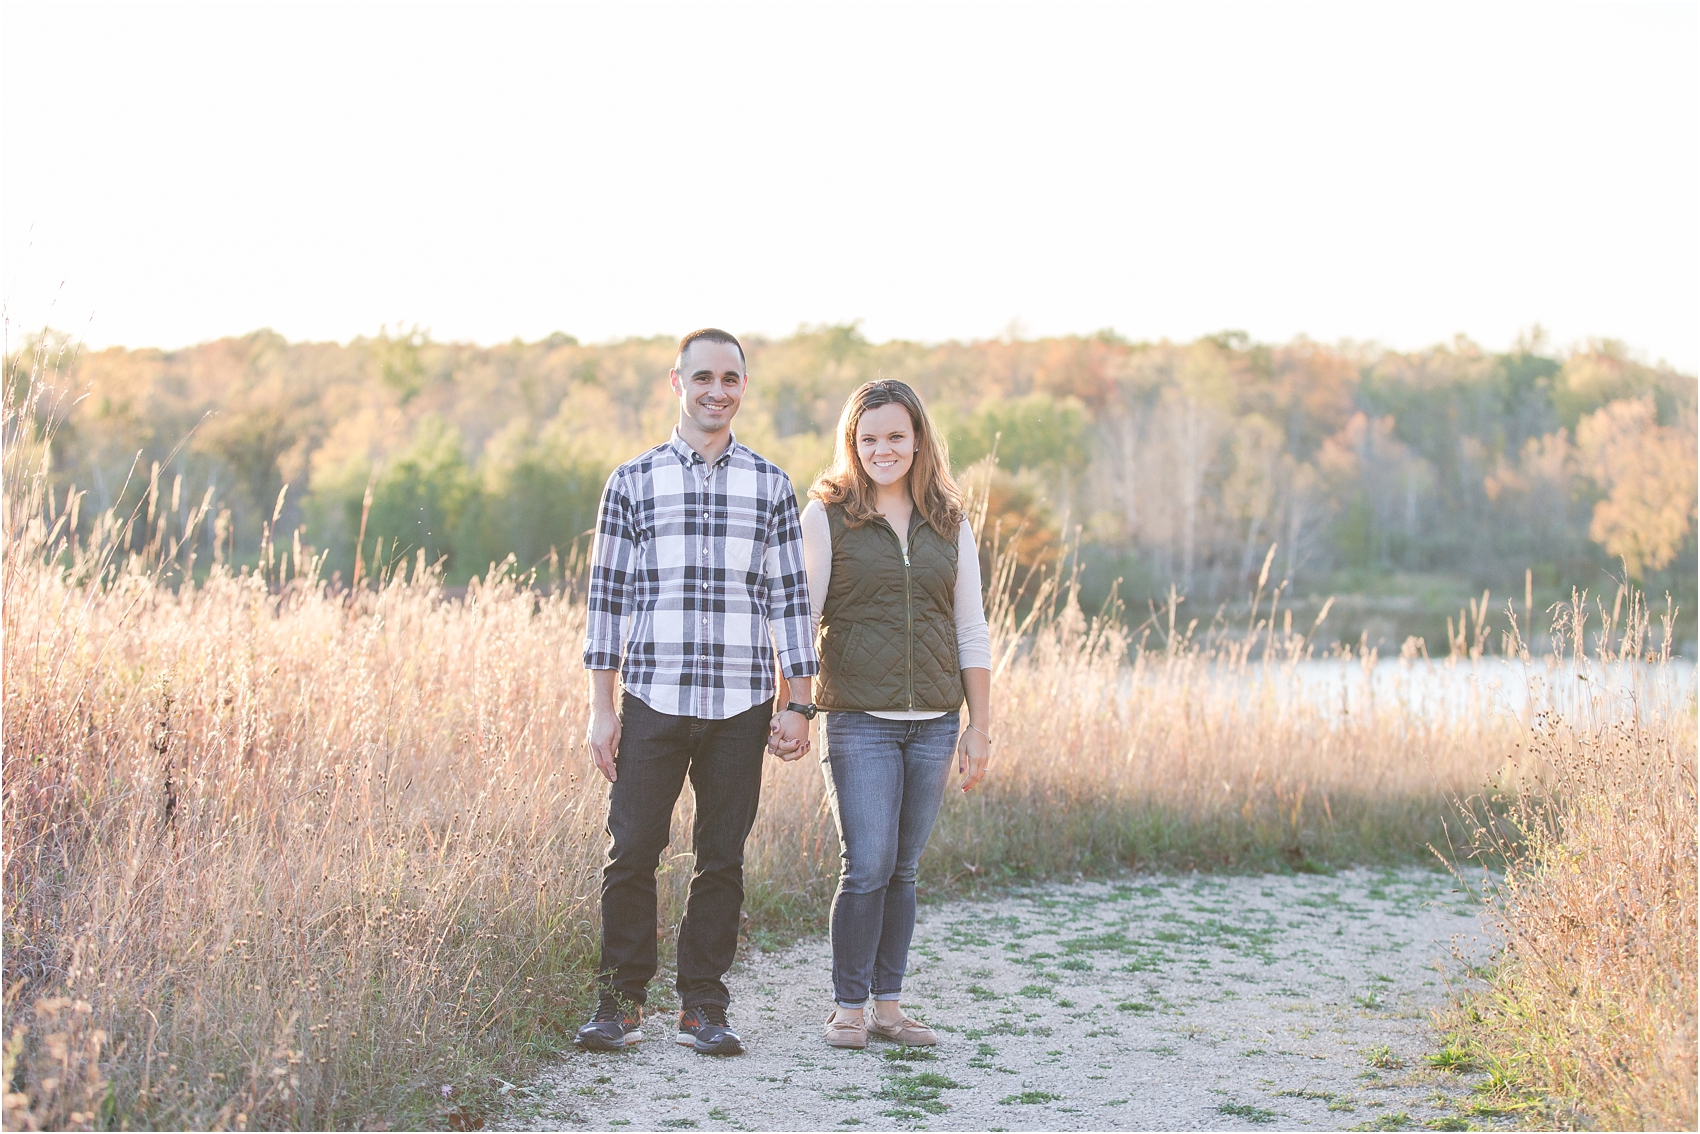 romantic-fall-engagement-photos-at-indian-springs-metropark-in-clarkston-mi-by-courtney-carolyn-photography_0020.jpg